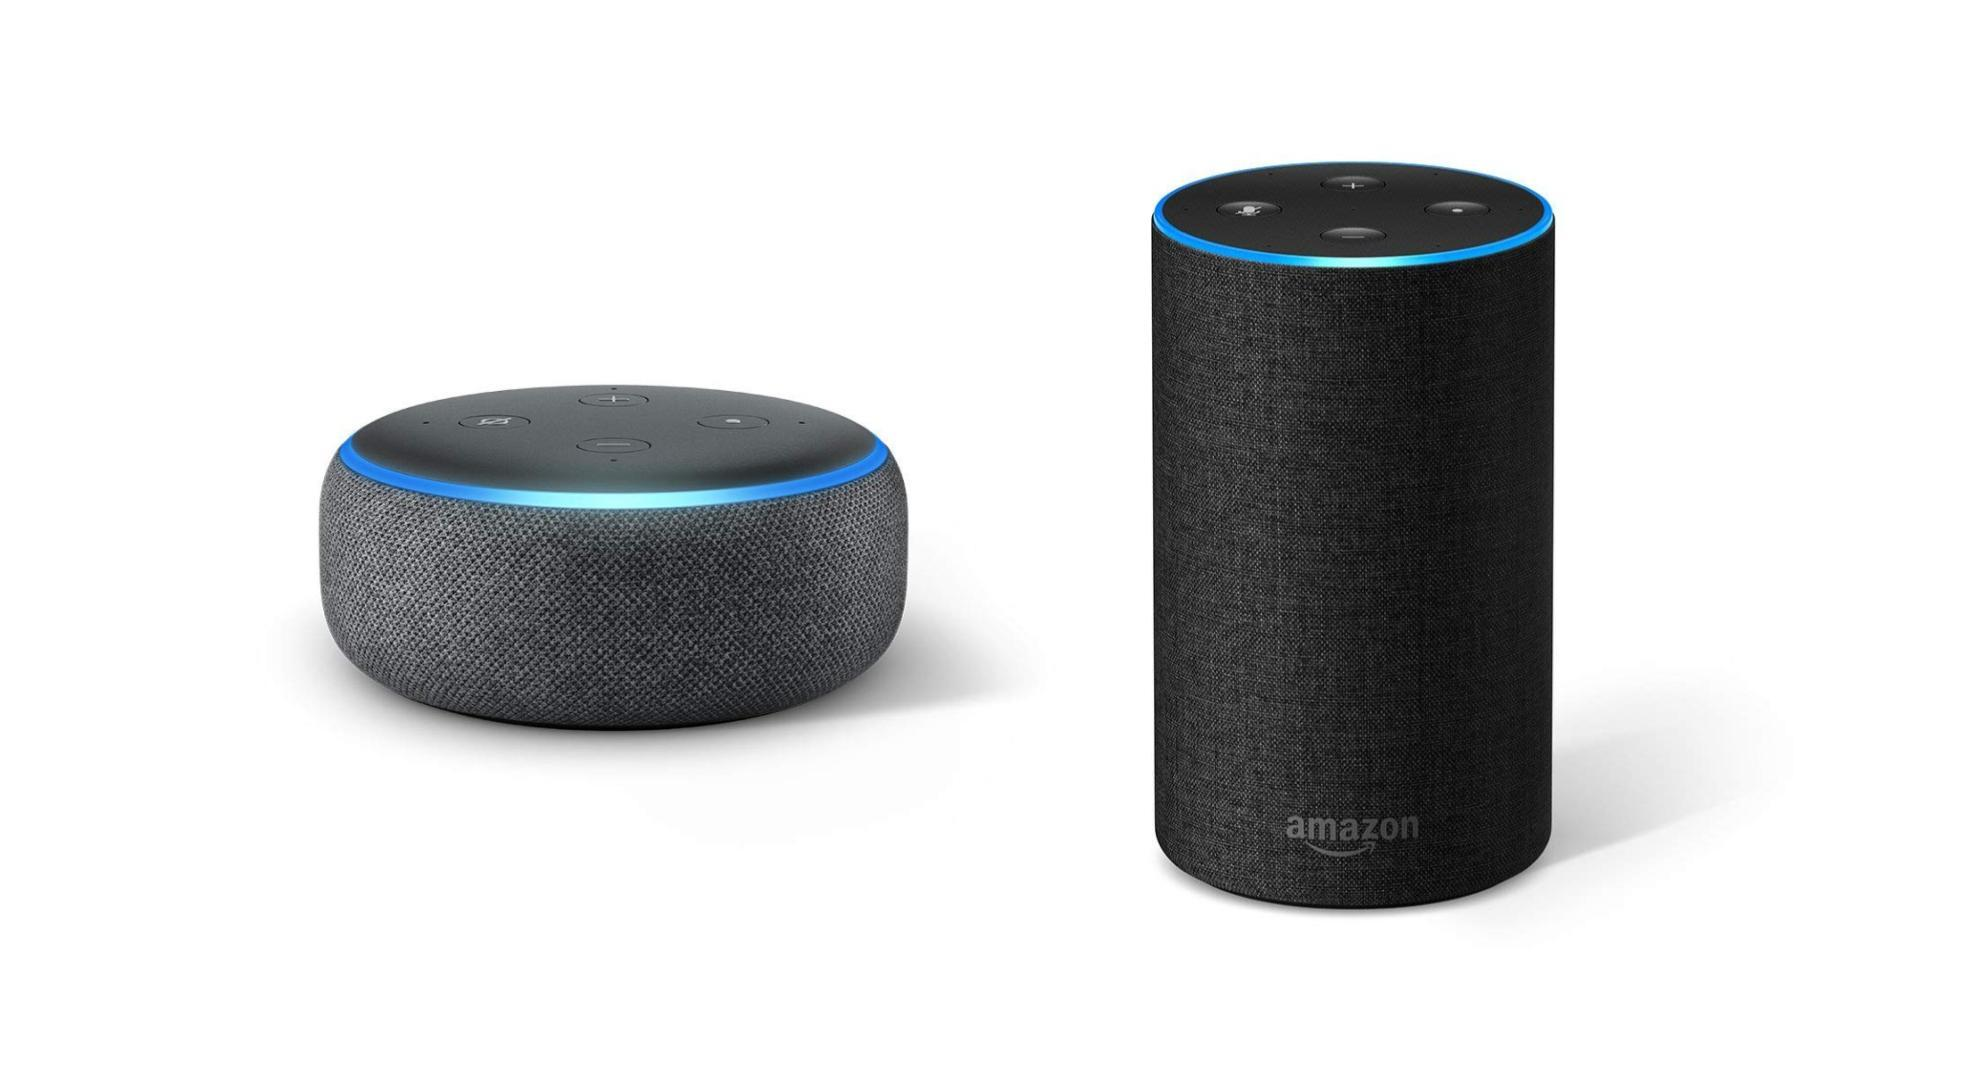 🔥 Bon plan : l'Echo Dot à 34,99 euros et l'Echo à 64,99 euros chez Amazon